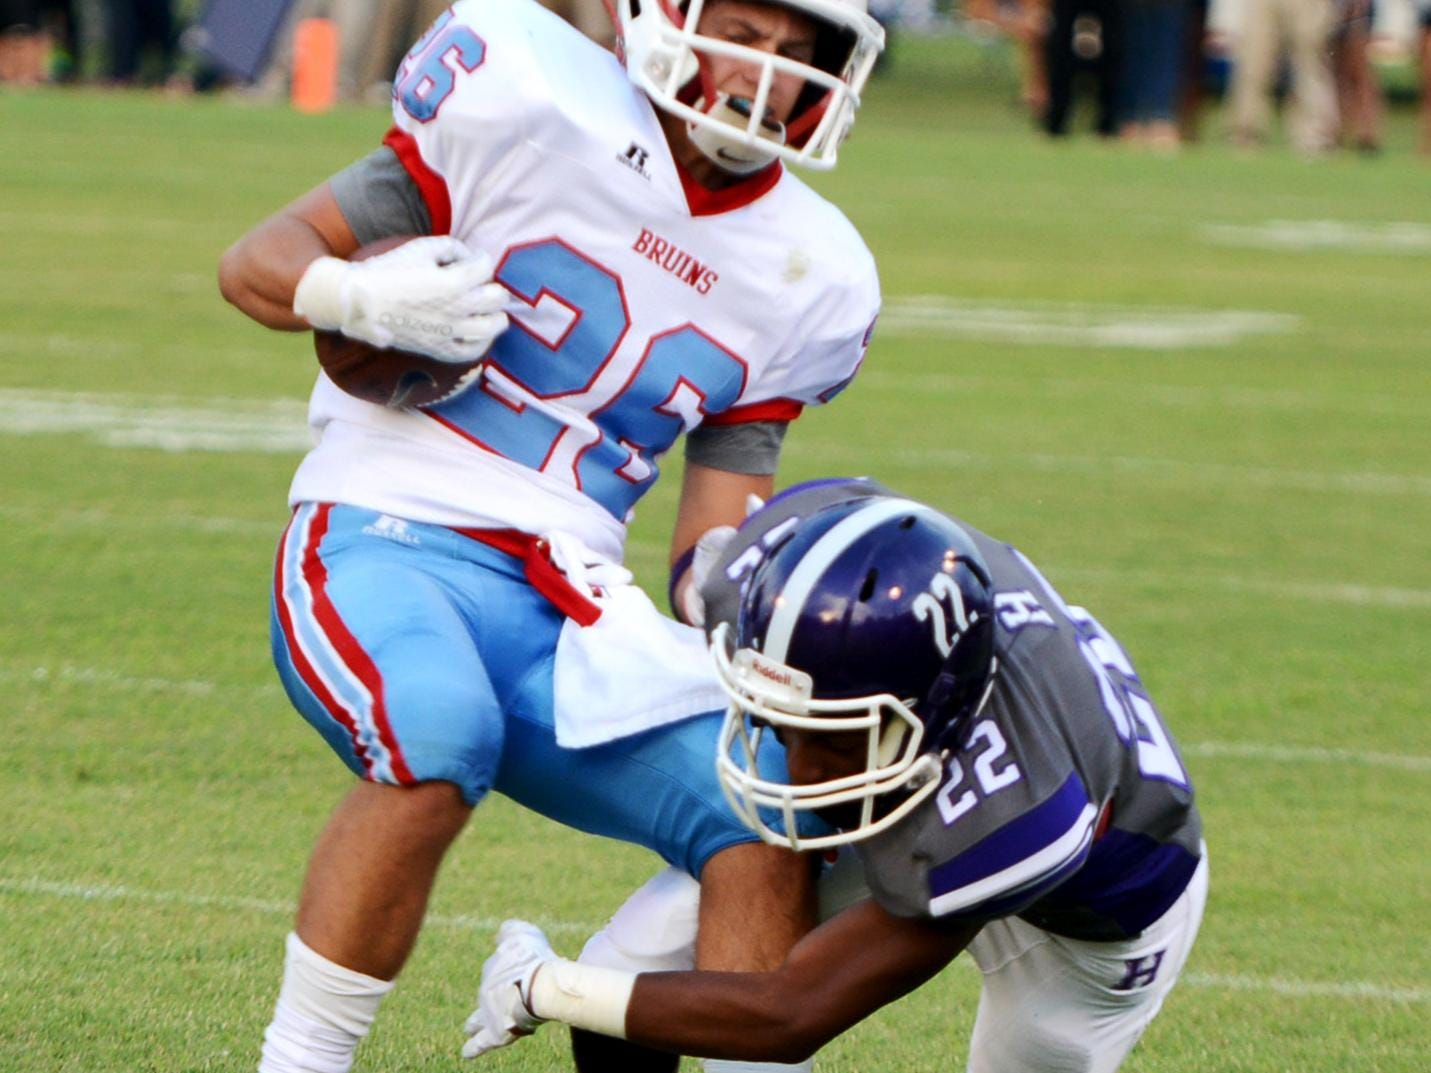 Haywood County's Shawn Douglas grabs University School of Jackson's William Jones during their game at the 2015 Sports PLUS Jamboree, Friday evening.